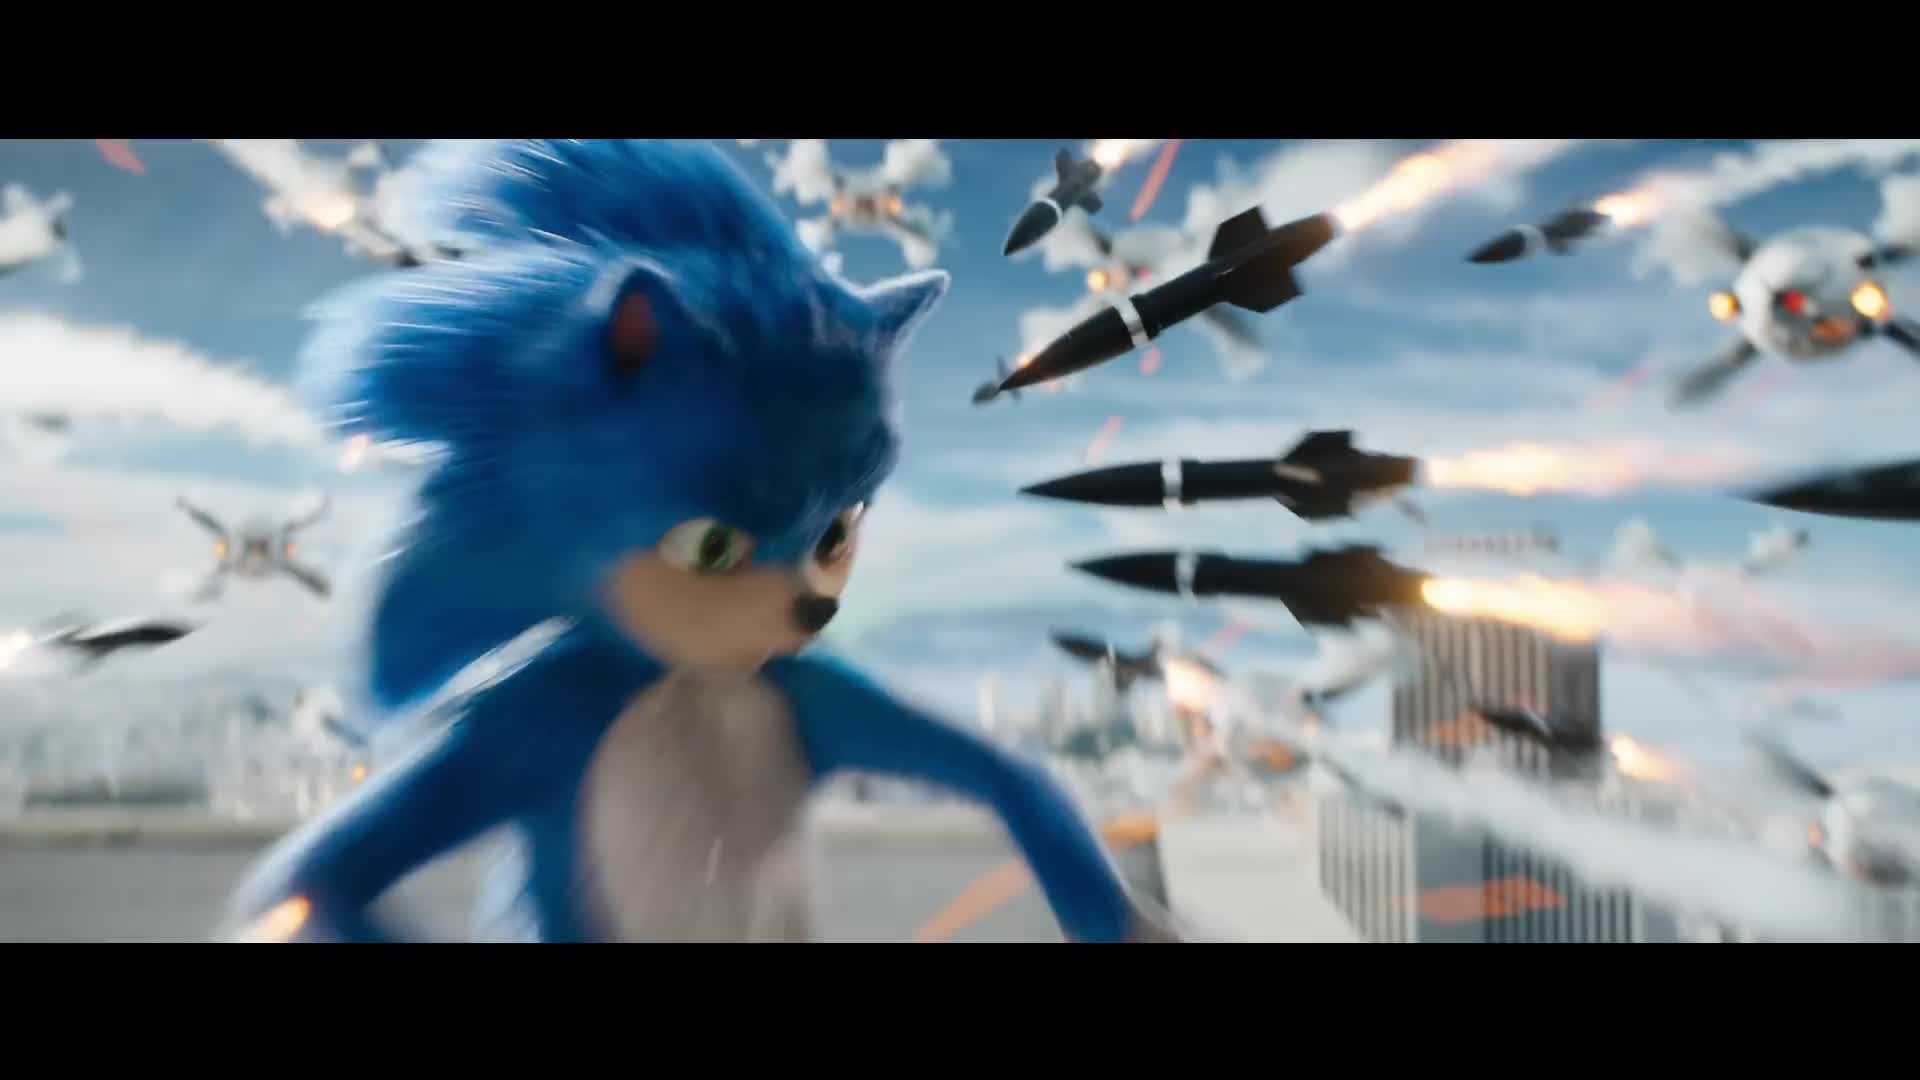 Sonic The Hedgehog S First Trailer Has Us 100 Fixated On His Teeth Gamesradar